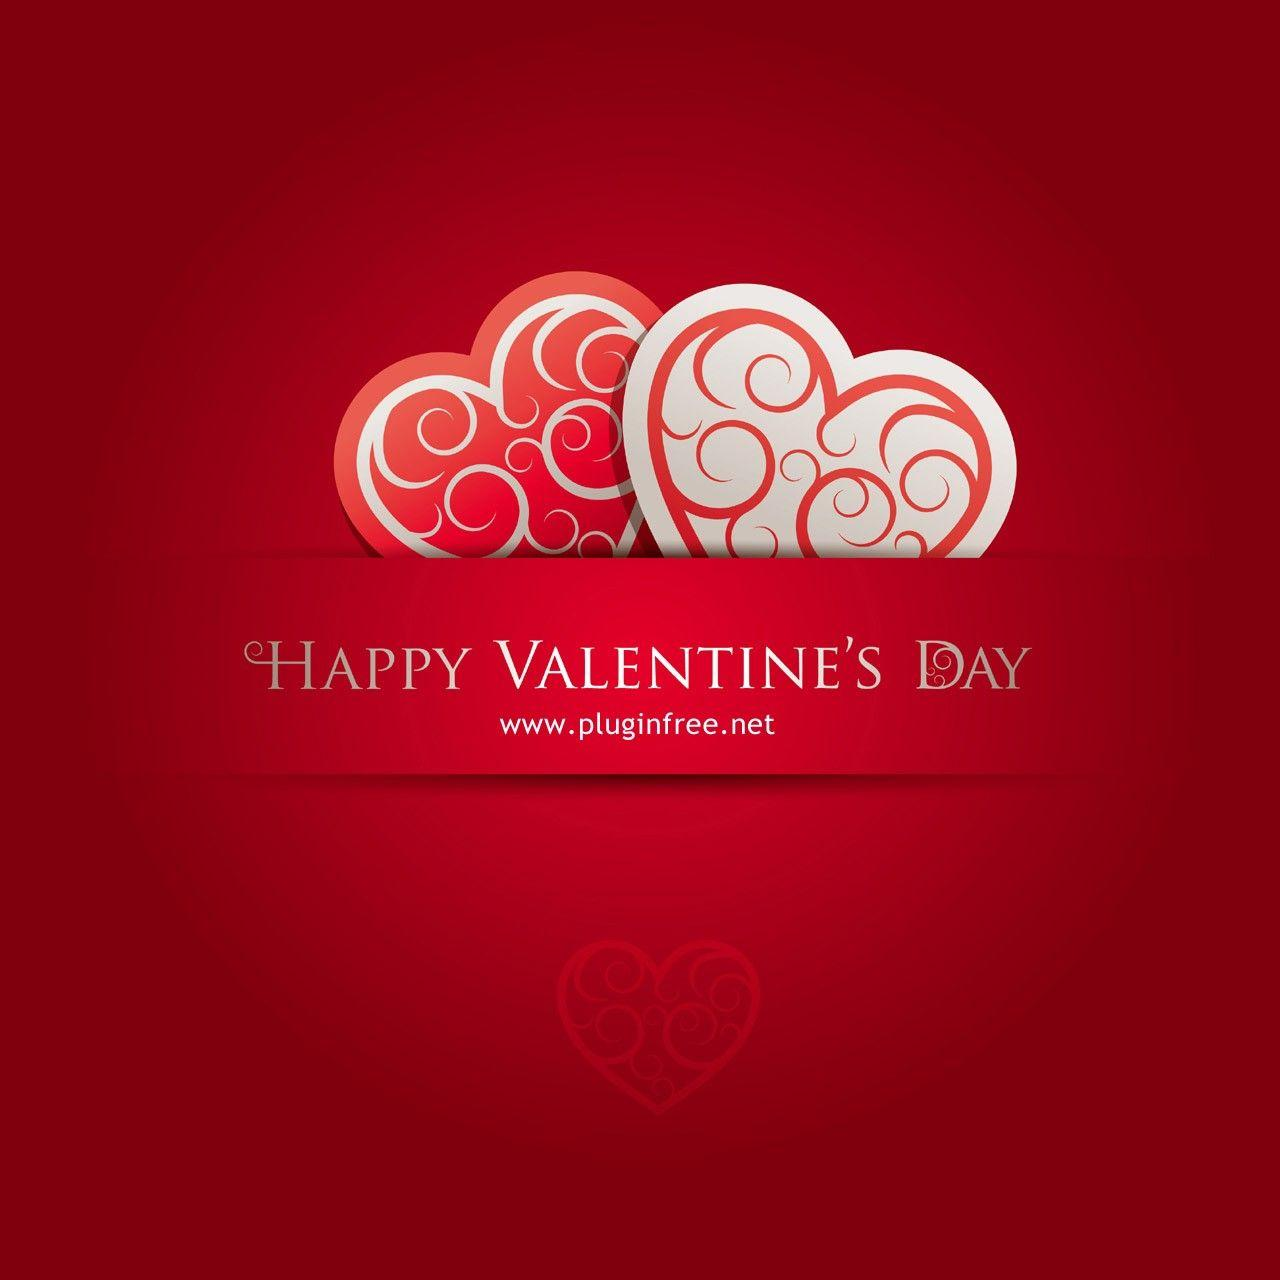 valentines day background clipart - photo #45